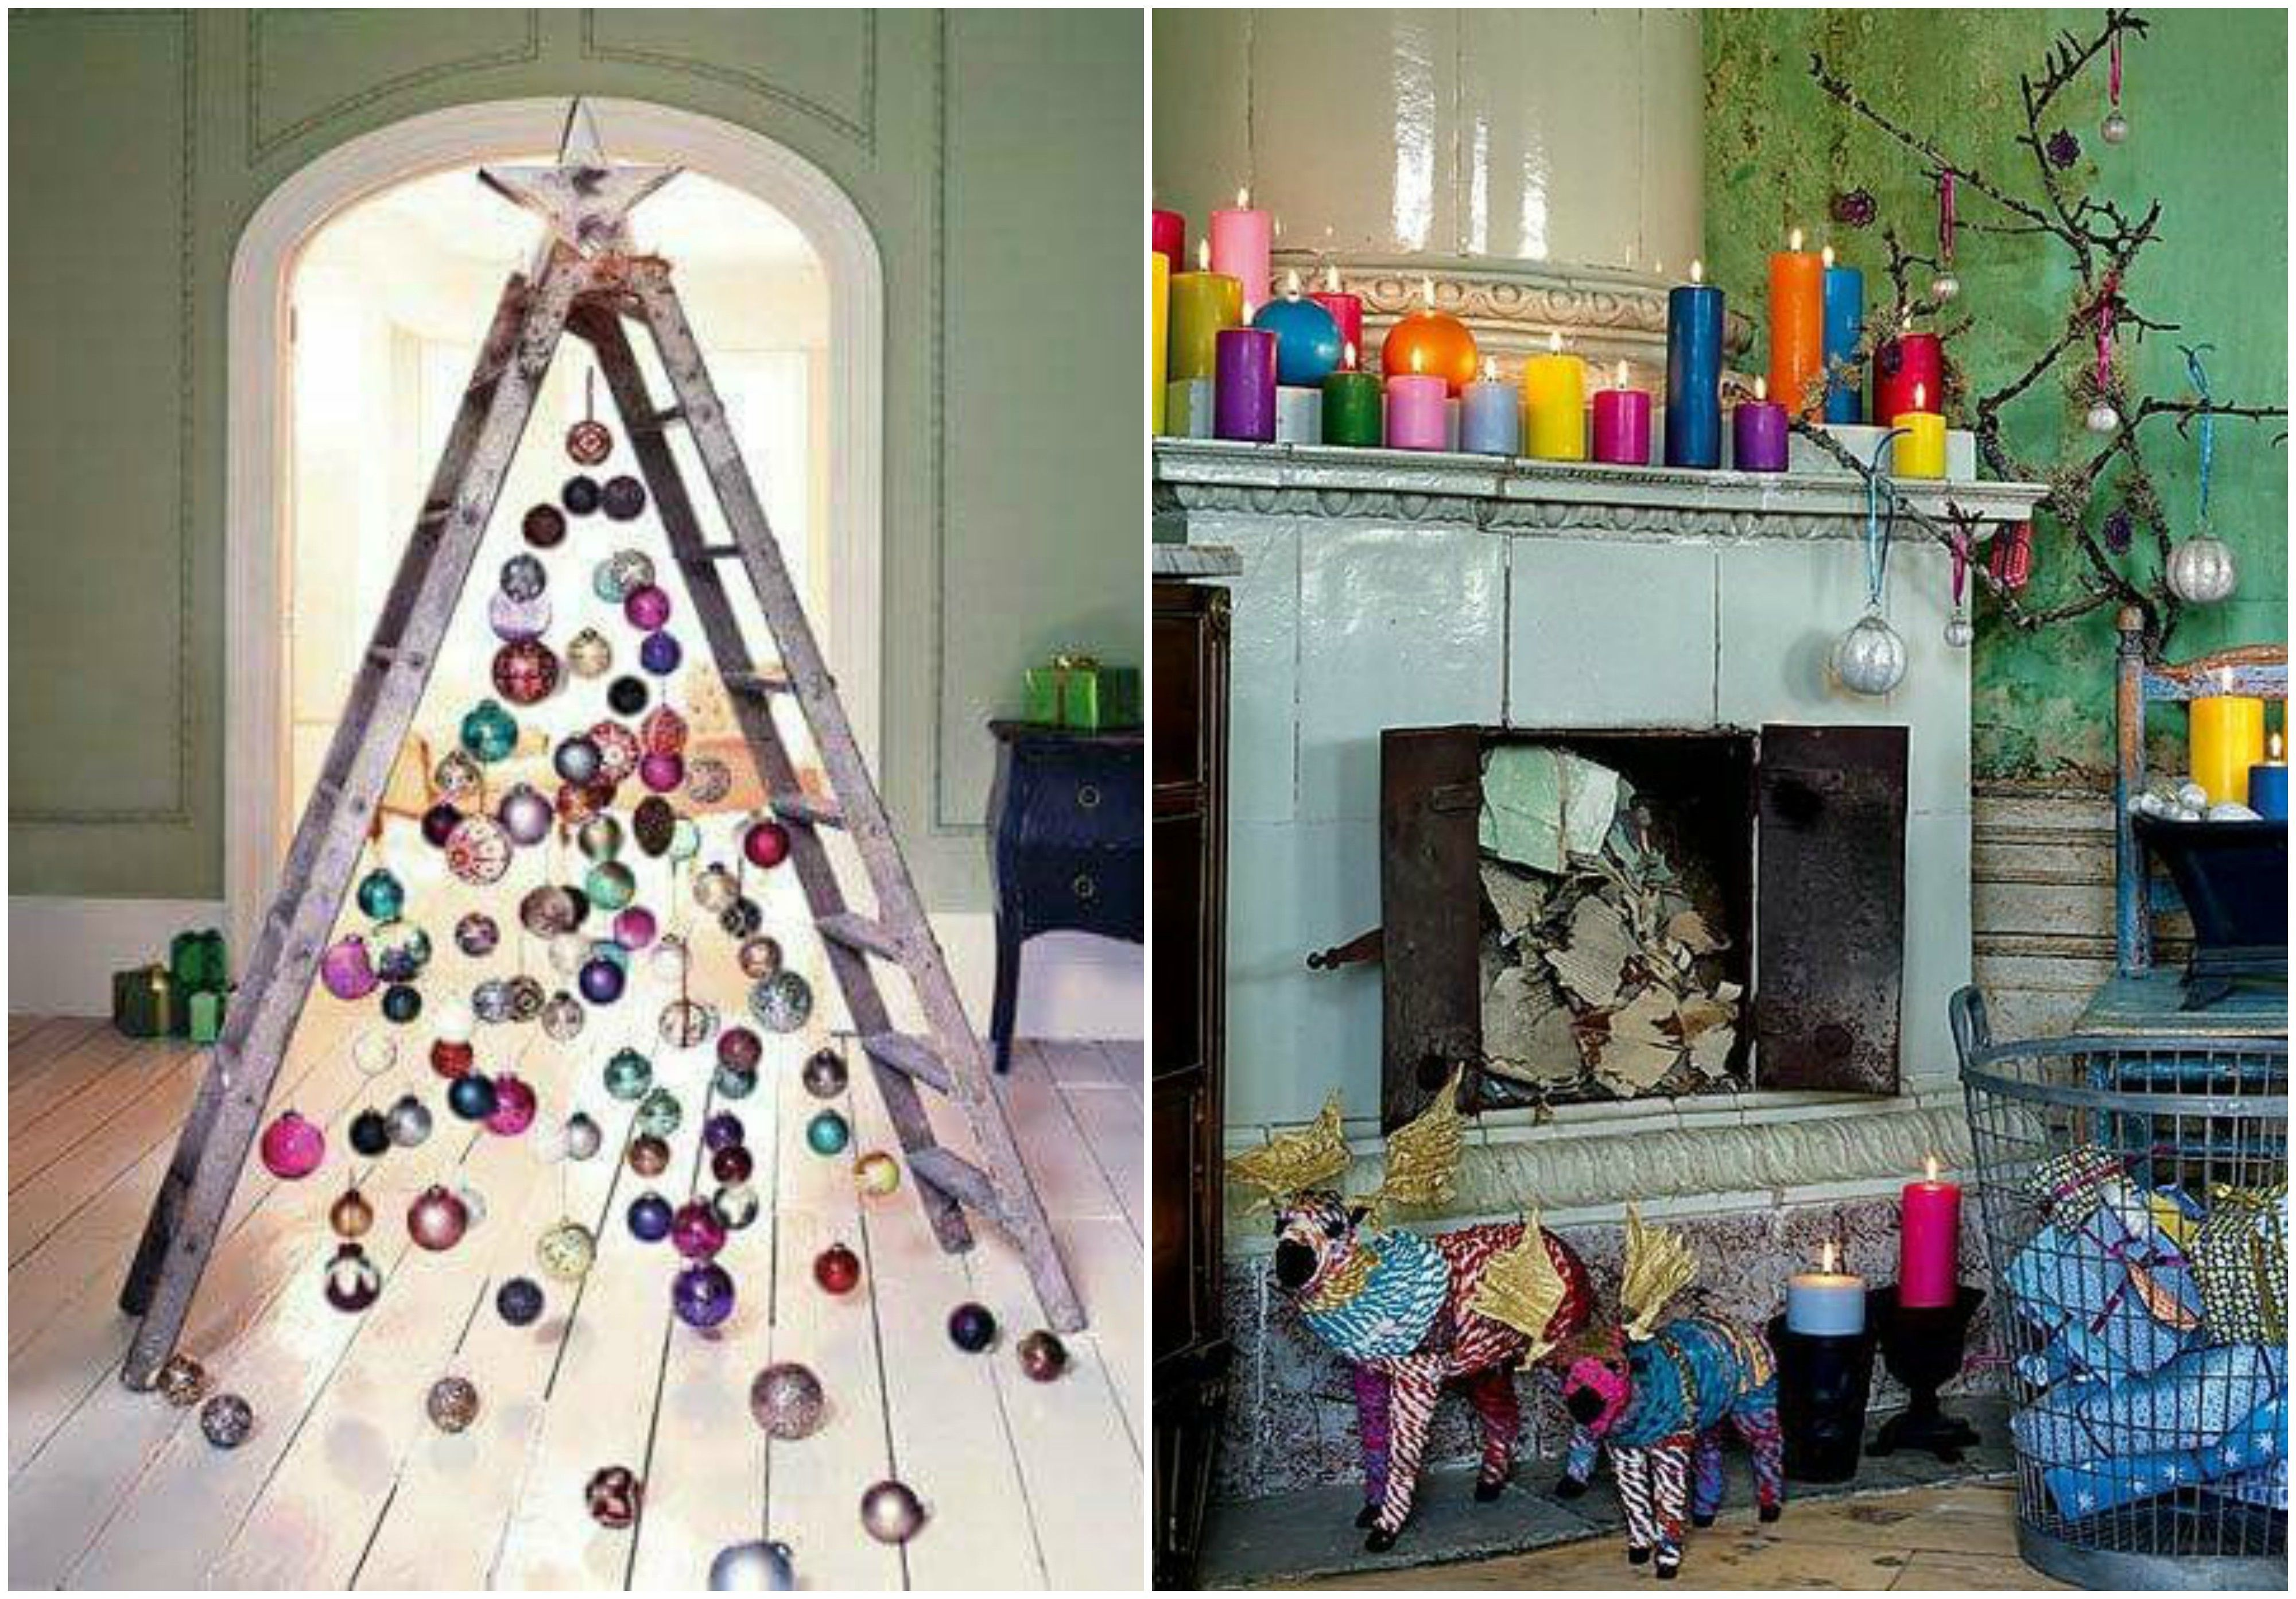 20 Quirky Ways To Decorate Your First Apartment For Christmas In 2020 Christmas Shop Window Boho Christmas Christmas Decorations